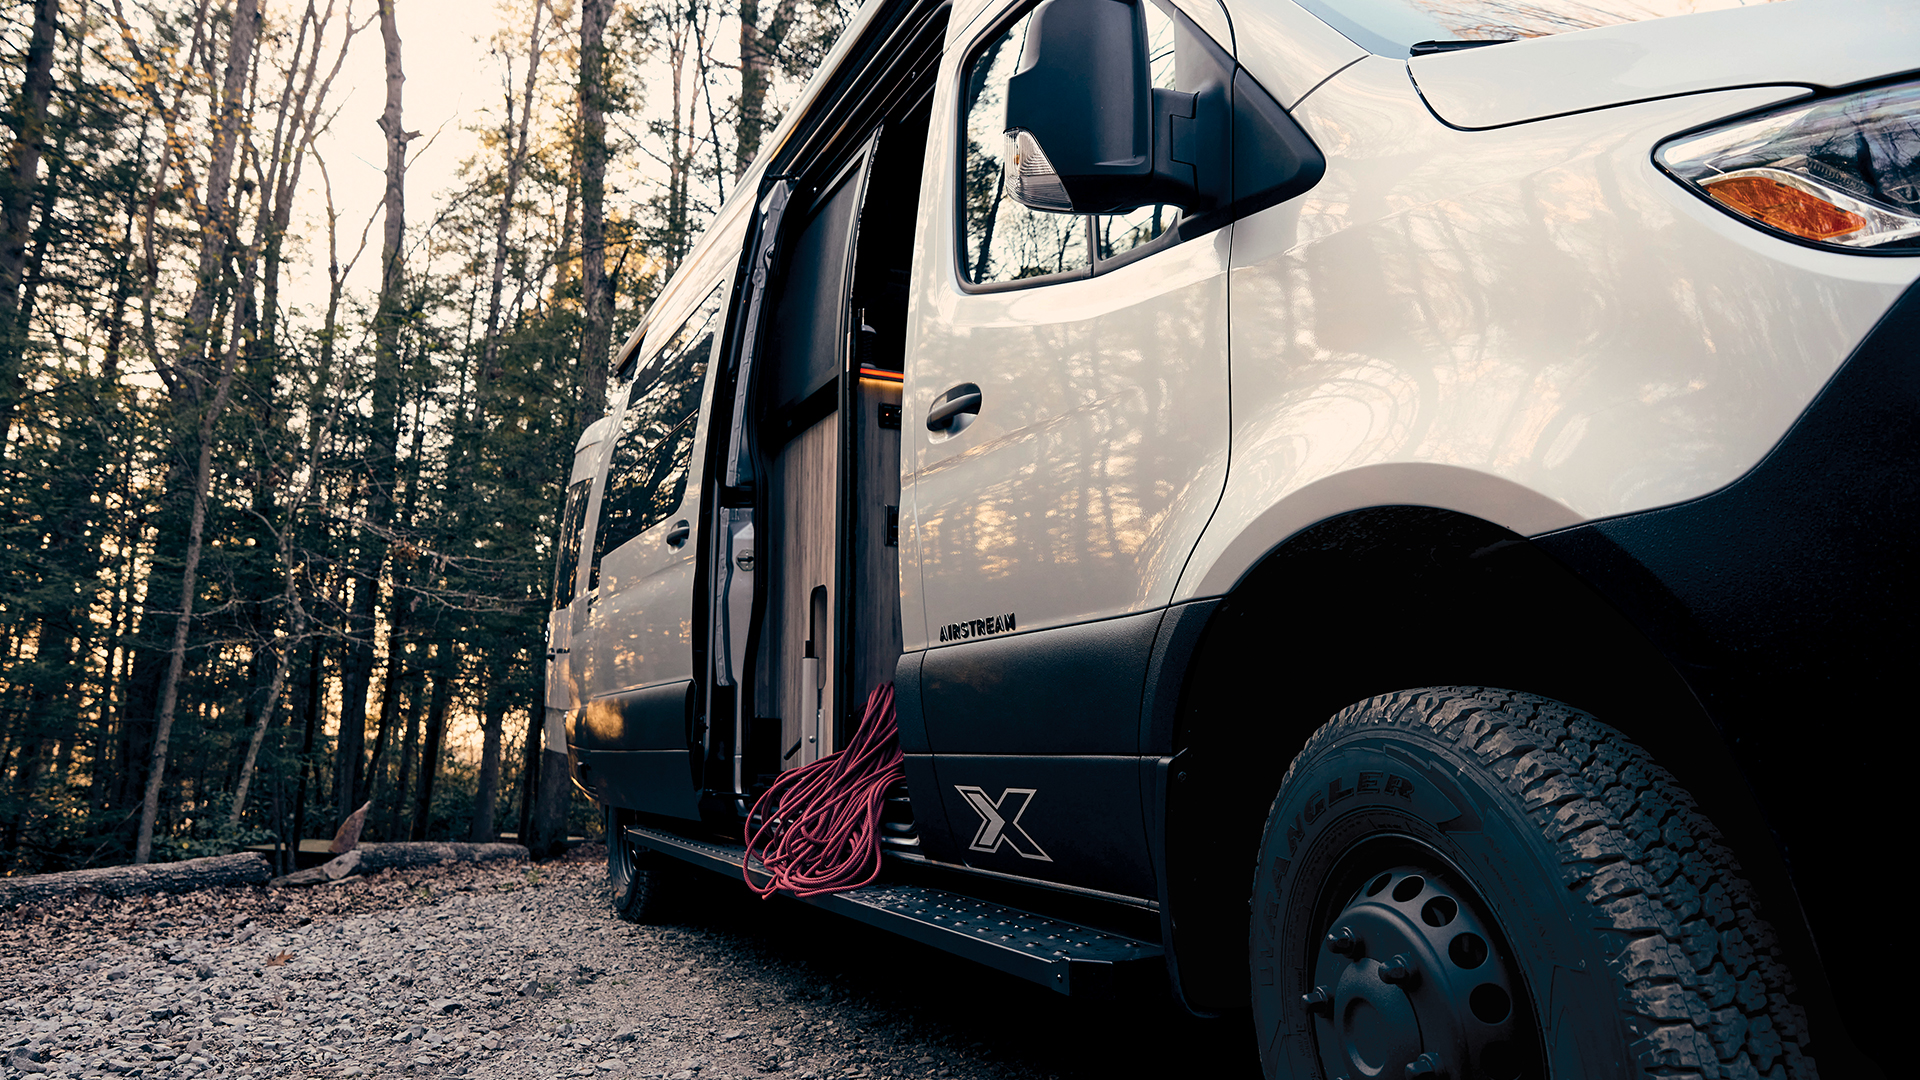 Airstream-Interstate-24X-Curb-Side-Exterior-with-Door-Open-Lifestyle